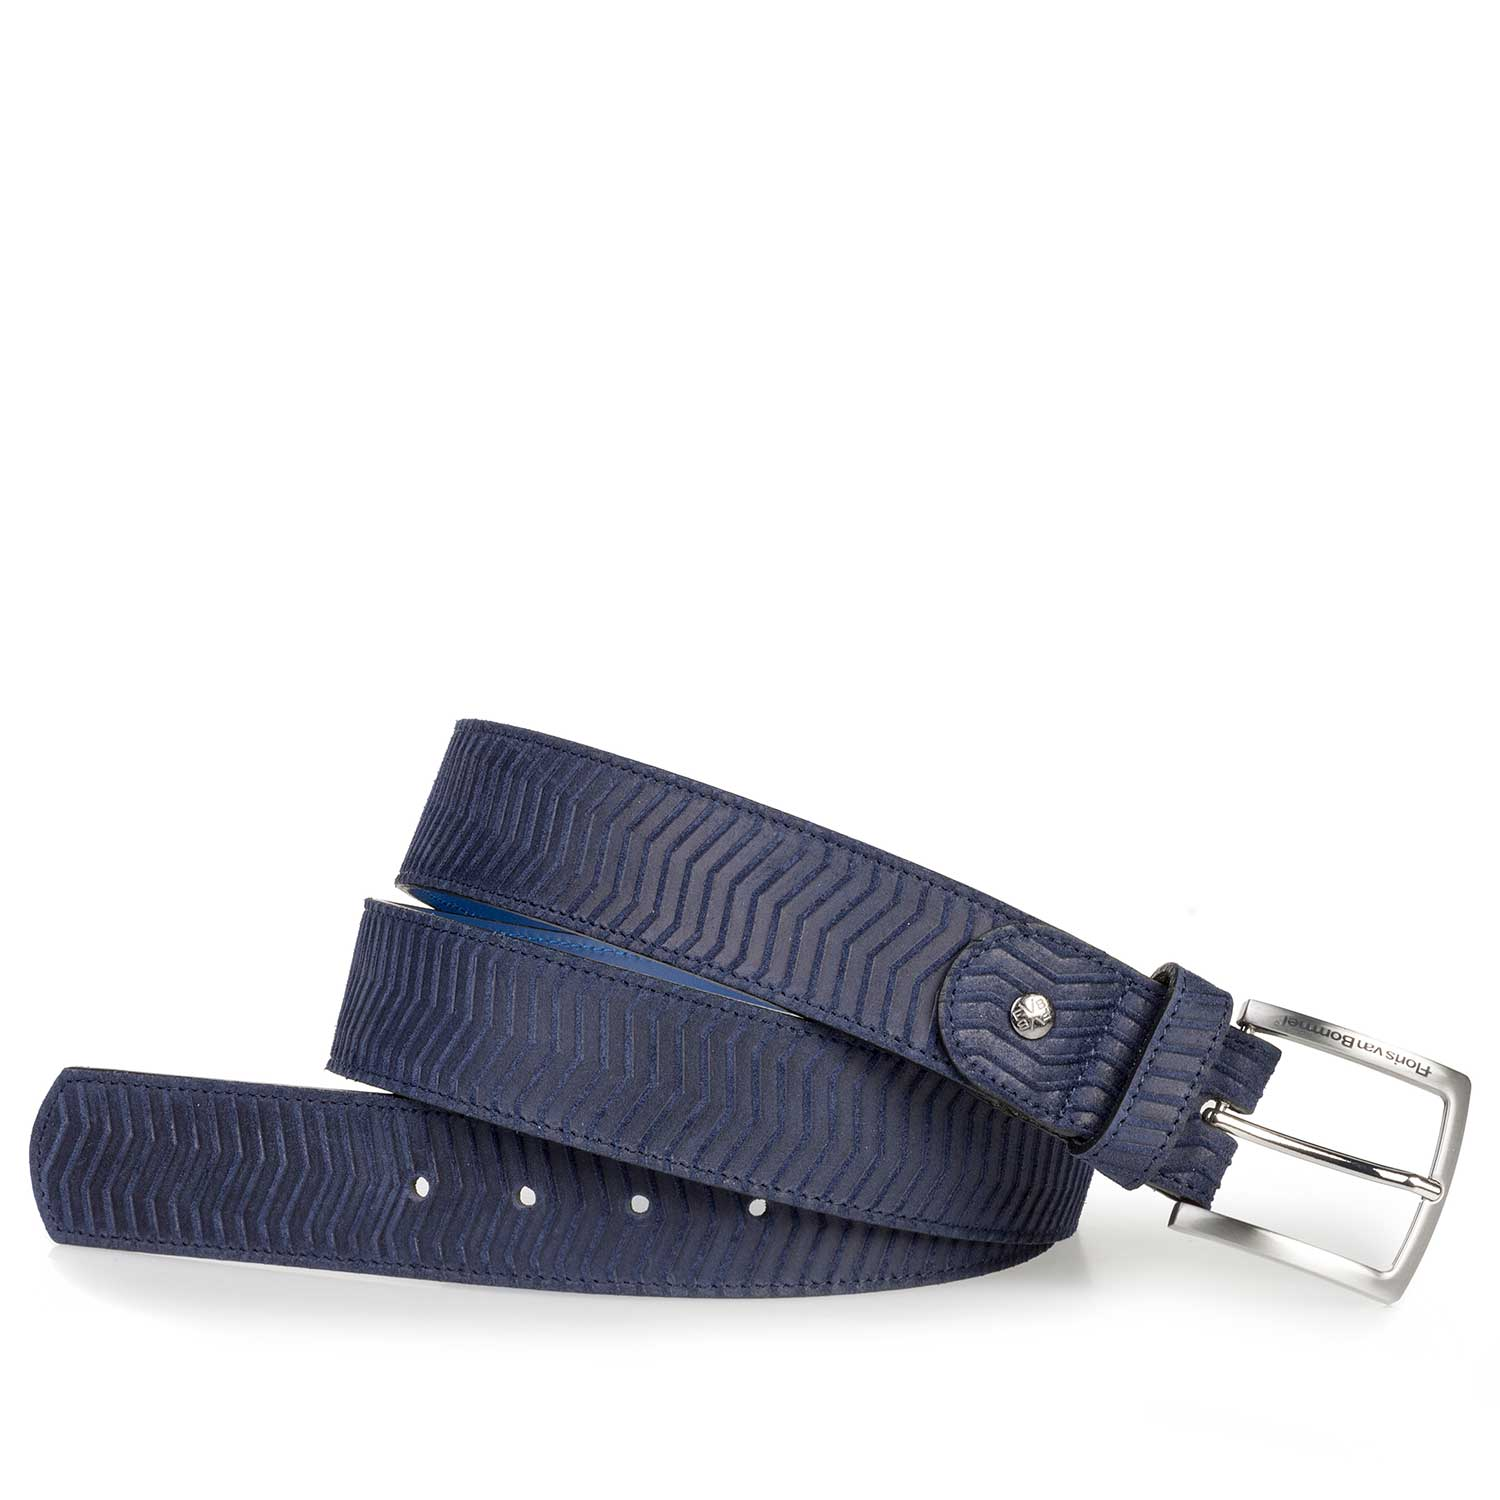 75184/14 - Dark blue suede leather belt with a zig-zag print